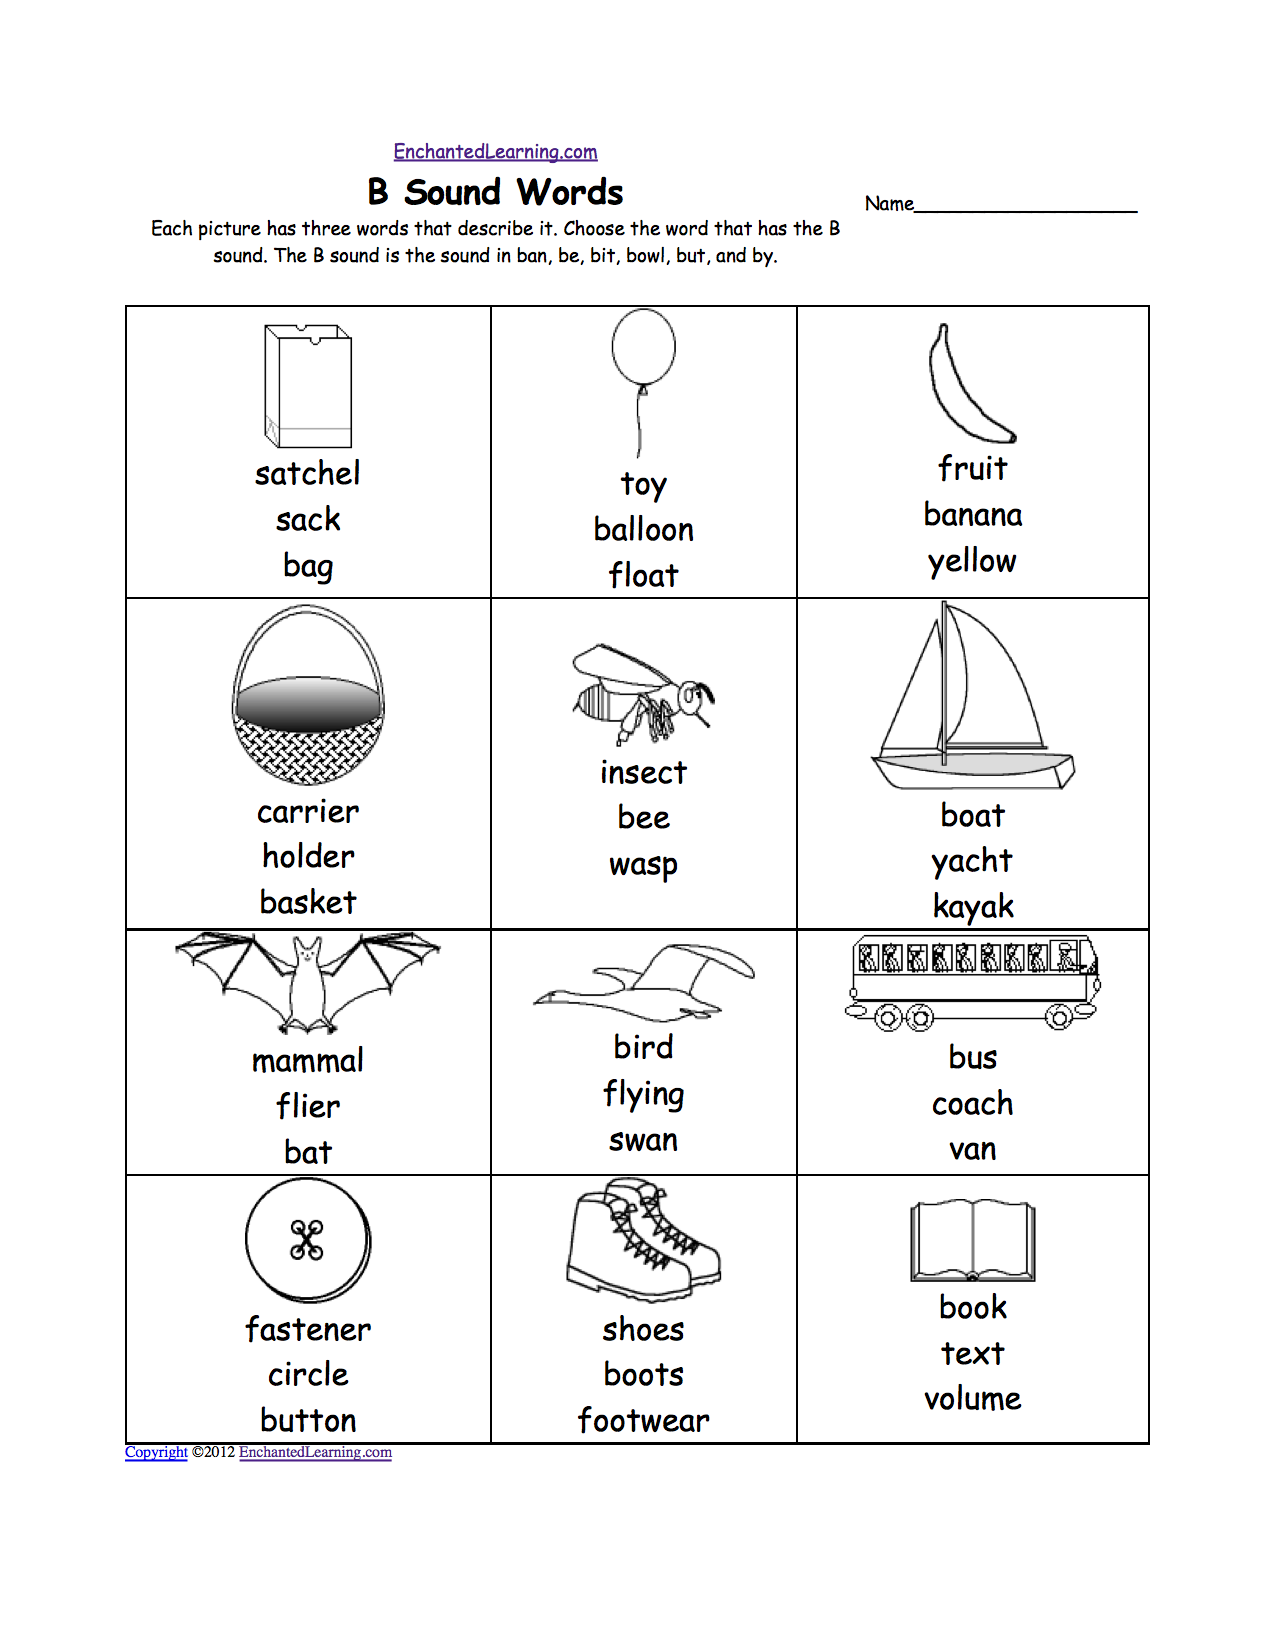 Weirdmailus  Prepossessing Phonics Worksheets Multiple Choice Worksheets To Print  With Heavenly Quotbquot Sound Phonics Worksheet Multiple Choice Each Picture Has Three Words That Describe It Choose The Word That Has A Quotbquot Sound The Quotbquot Sound Is The Sound  With Agreeable Money Recognition Worksheets Also Cursive Alphabet Worksheets Free Printable In Addition Cbt Depression Worksheets And Free Printable Learning Worksheets As Well As Count And Color Worksheets Additionally Analytic Geometry Worksheets From Enchantedlearningcom With Weirdmailus  Heavenly Phonics Worksheets Multiple Choice Worksheets To Print  With Agreeable Quotbquot Sound Phonics Worksheet Multiple Choice Each Picture Has Three Words That Describe It Choose The Word That Has A Quotbquot Sound The Quotbquot Sound Is The Sound  And Prepossessing Money Recognition Worksheets Also Cursive Alphabet Worksheets Free Printable In Addition Cbt Depression Worksheets From Enchantedlearningcom